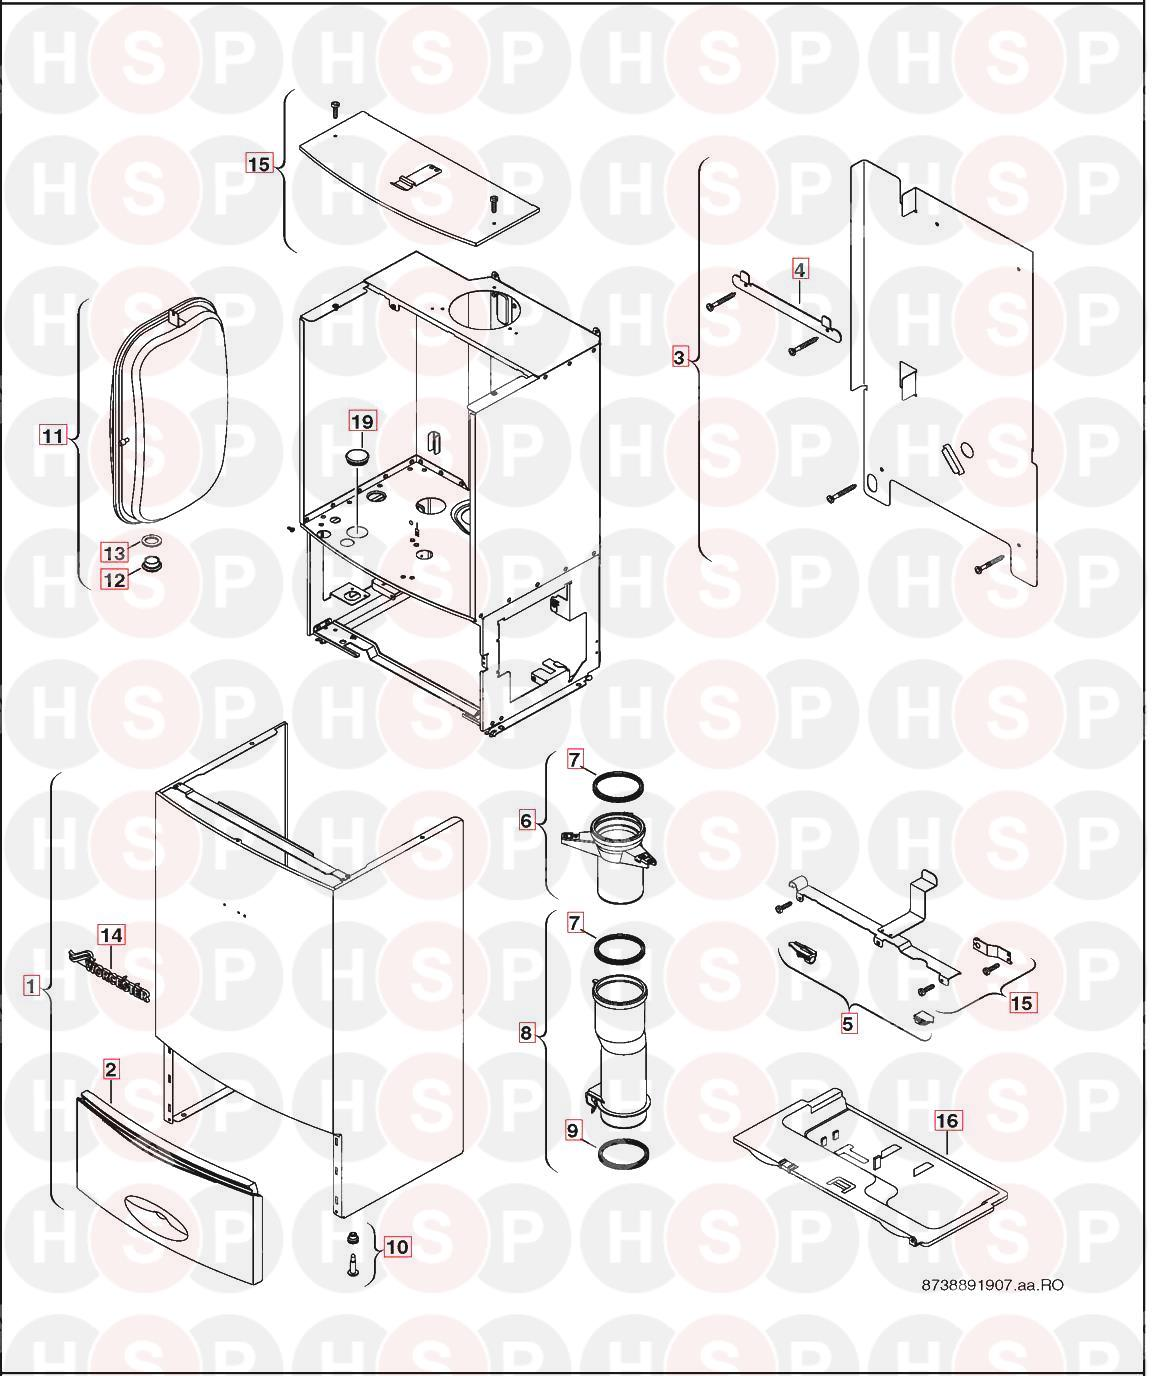 Worcester GREENSTAR 38CDI CLASSIC (SHEET METAL) Diagram